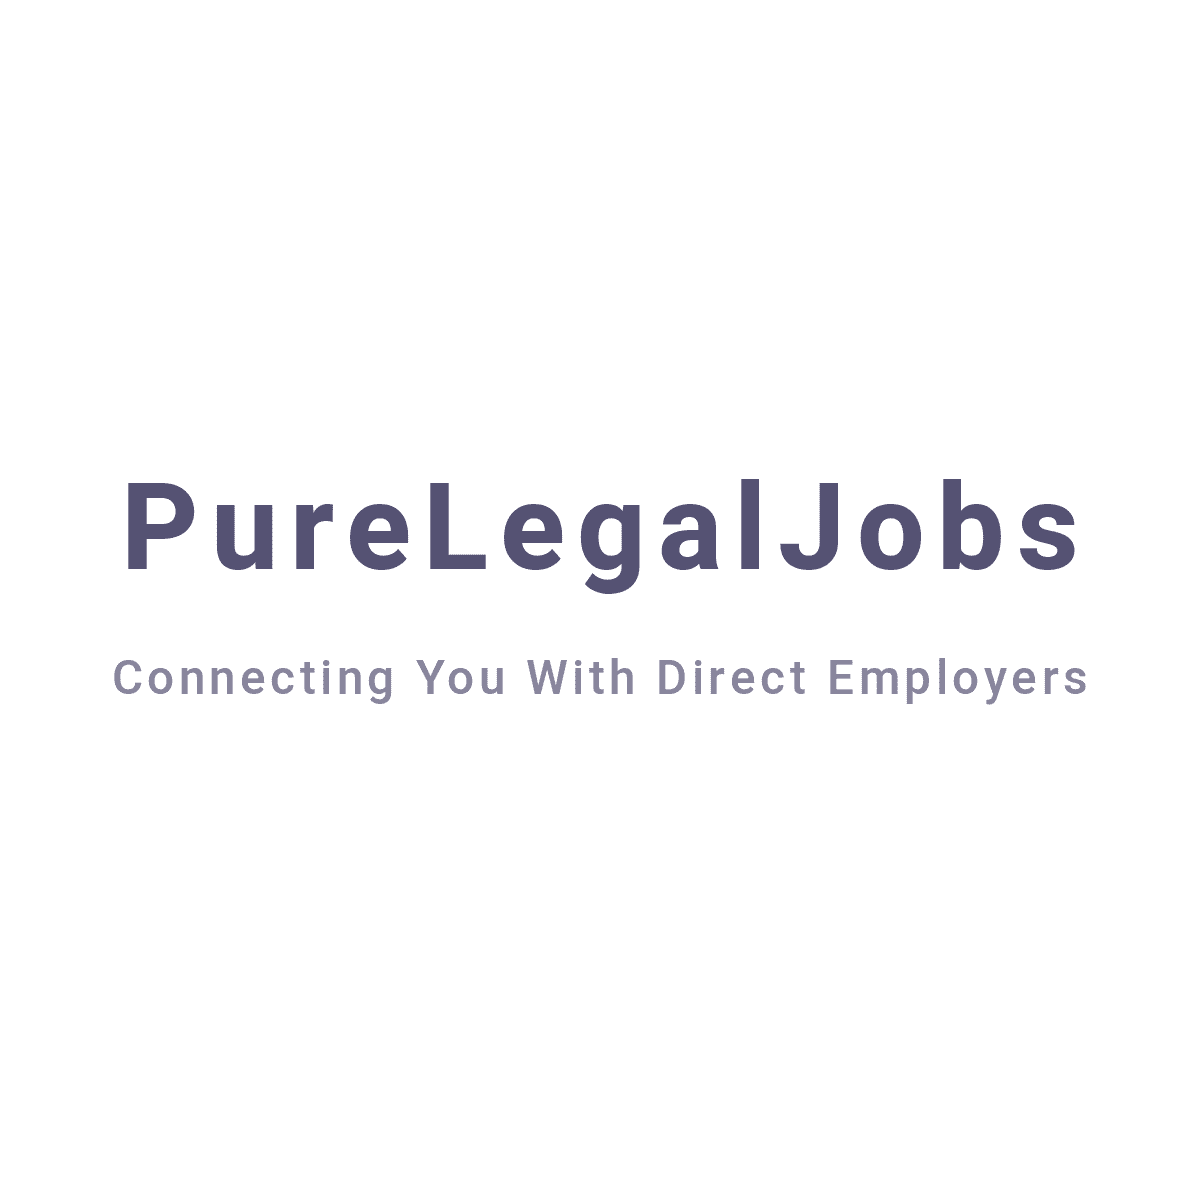 PureLegalJobs